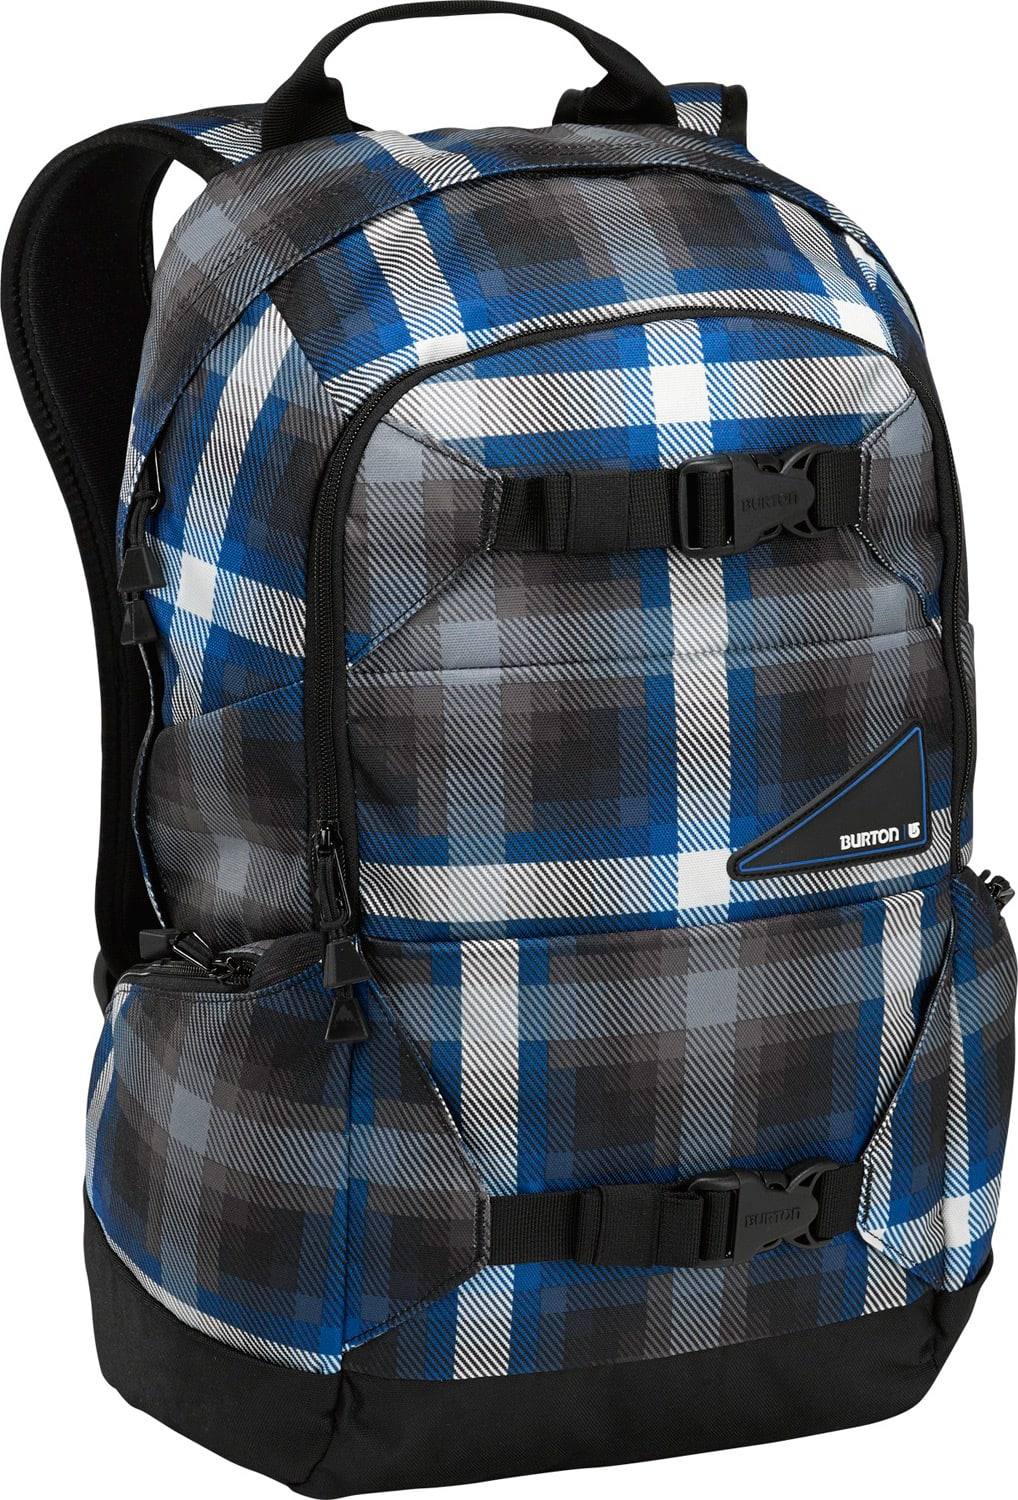 Burton Day Hiker Backpack Cobalt Springer Plaid 20L